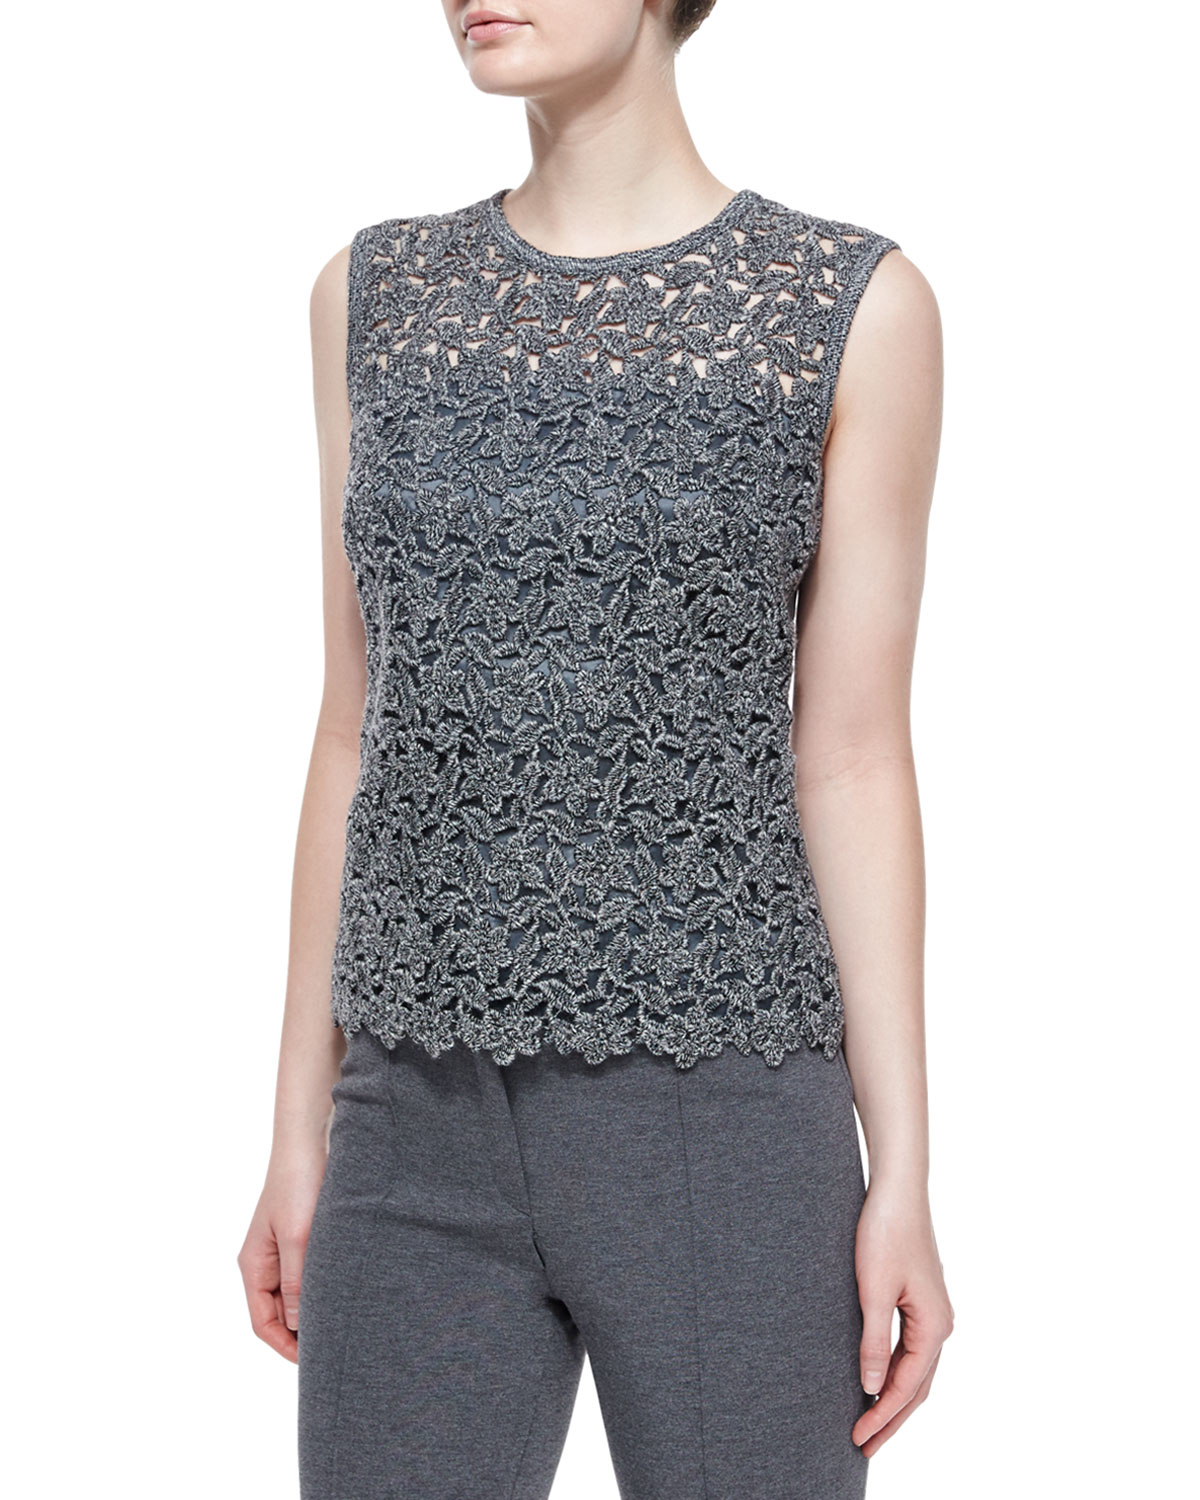 429b57c093c8f Lyst - ESCADA Paneled Floral Lace Tank Top in Gray